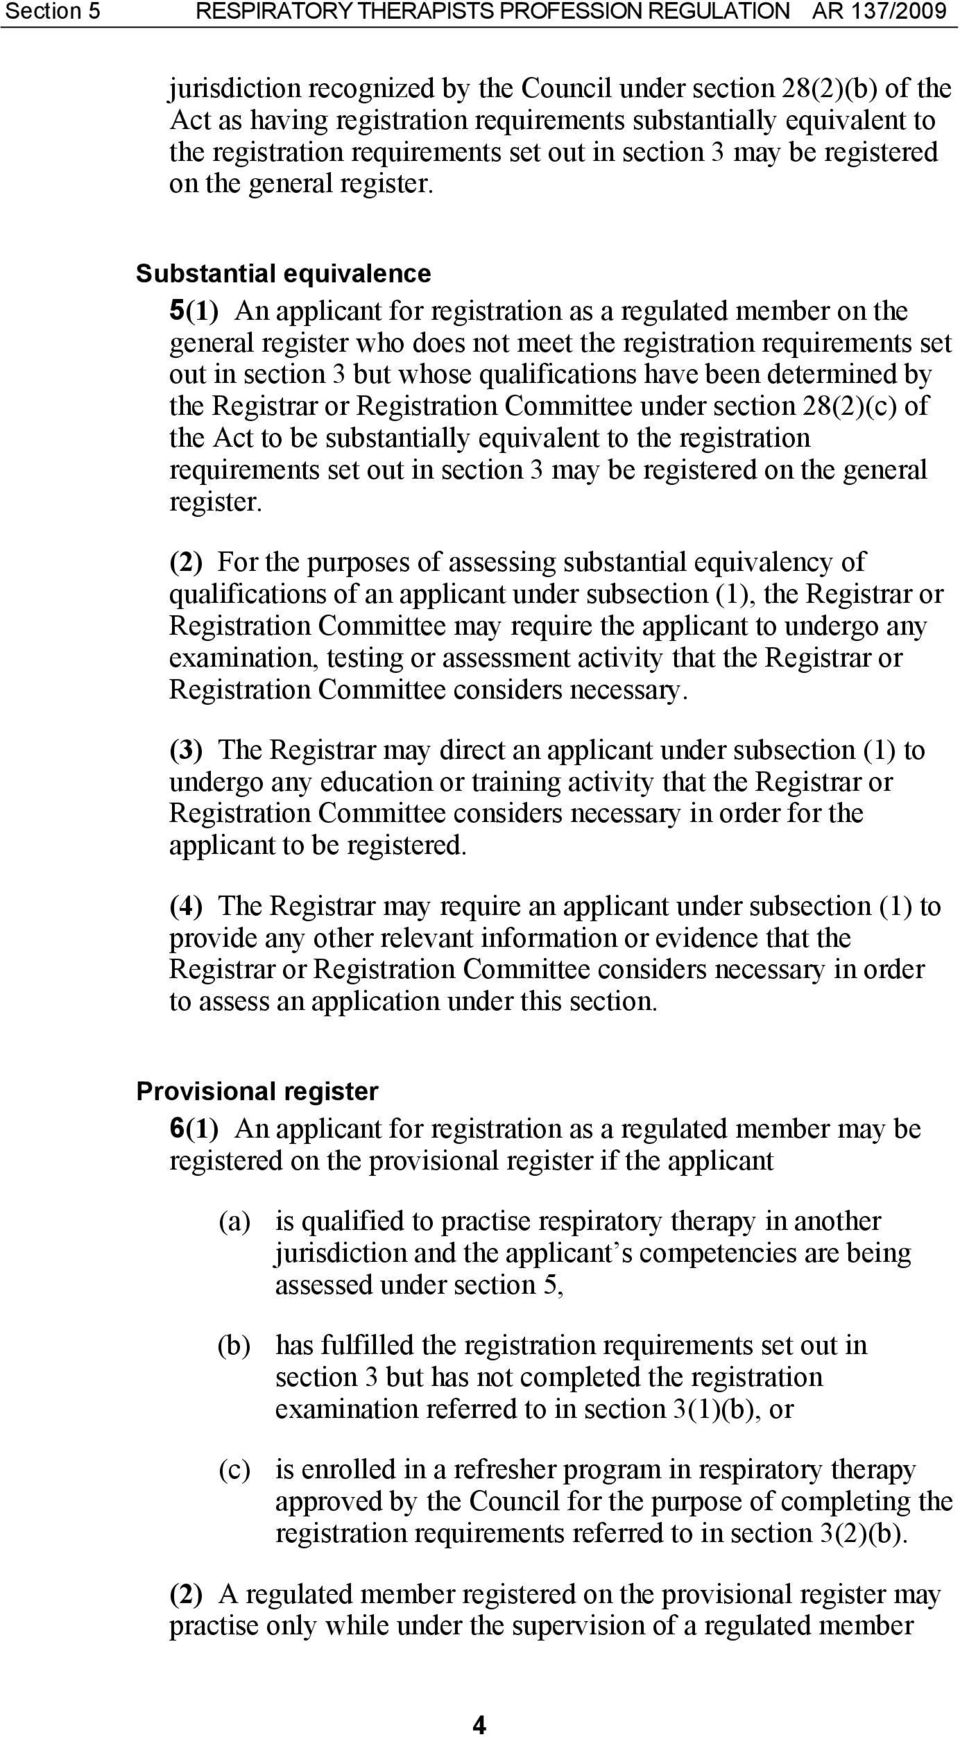 Substantial equivalence 5(1) An applicant for registration as a regulated member on the general register who does not meet the registration requirements set out in section 3 but whose qualifications